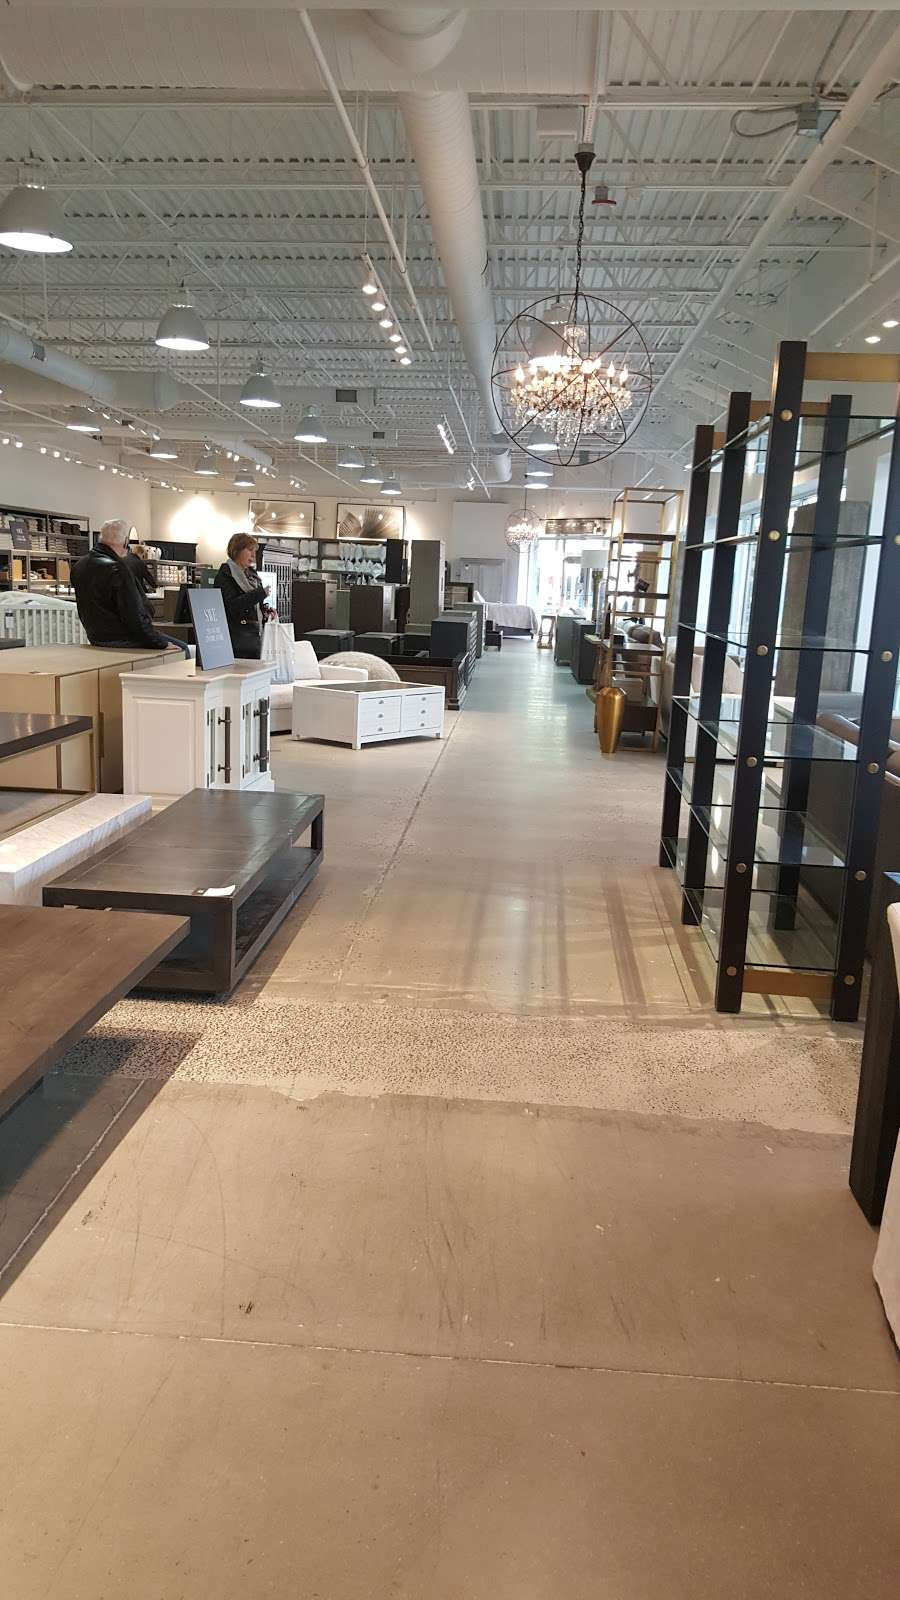 Restoration Hardware Outlet - furniture store  | Photo 7 of 10 | Address: 18 West Lightcap Rd Suite 501, Sanatoga, PA 19464, USA | Phone: (610) 970-1518